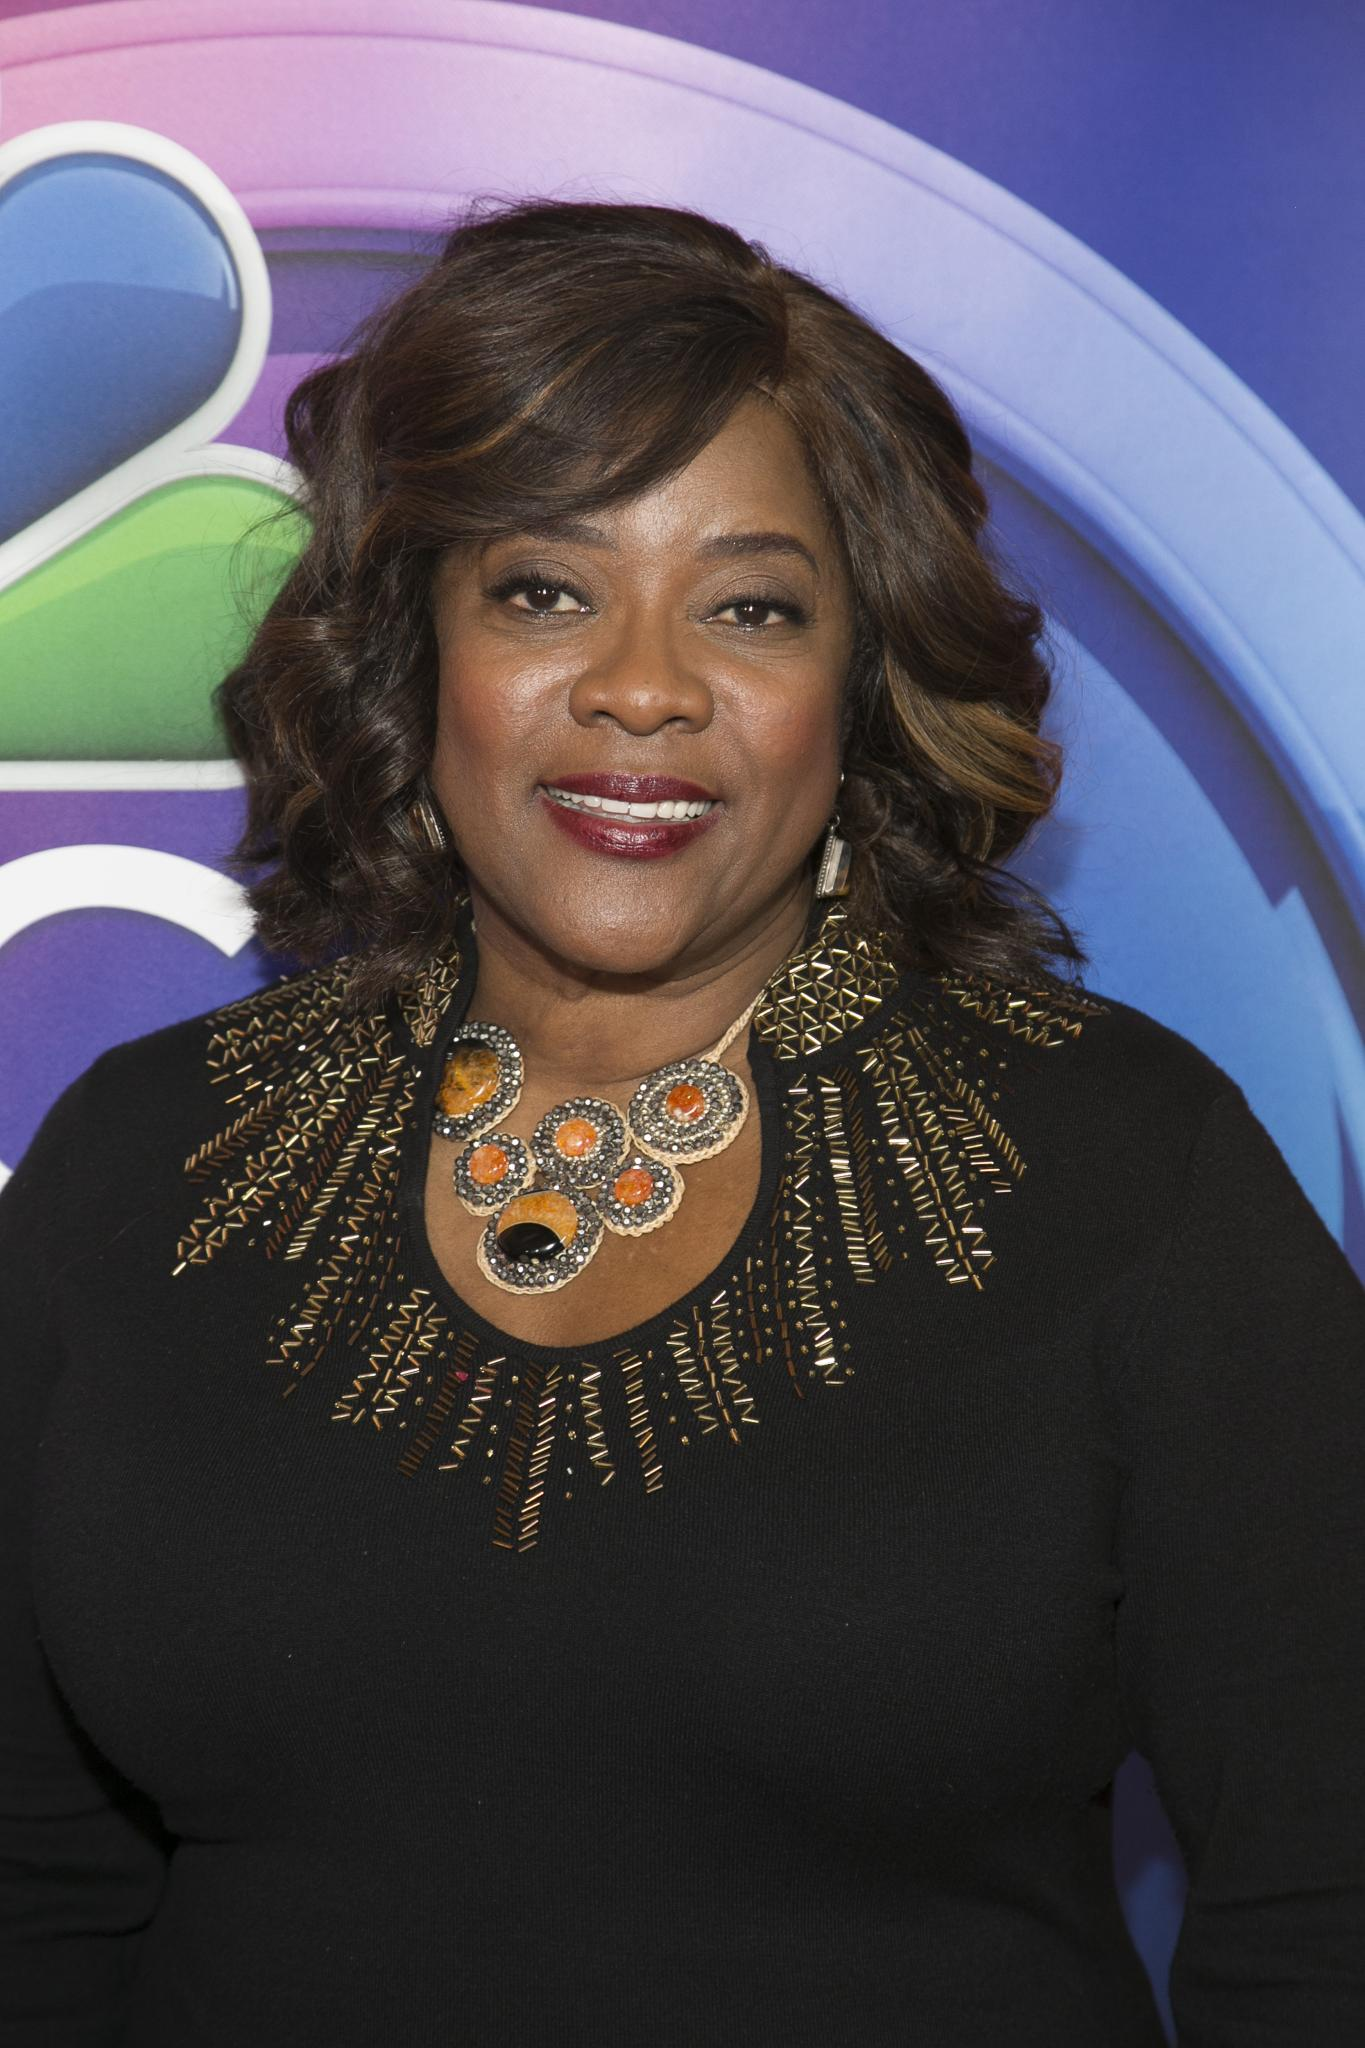 EXCLUSIVE: Loretta Devine Talks New Film on Human Trafficking, 'Caged No More'